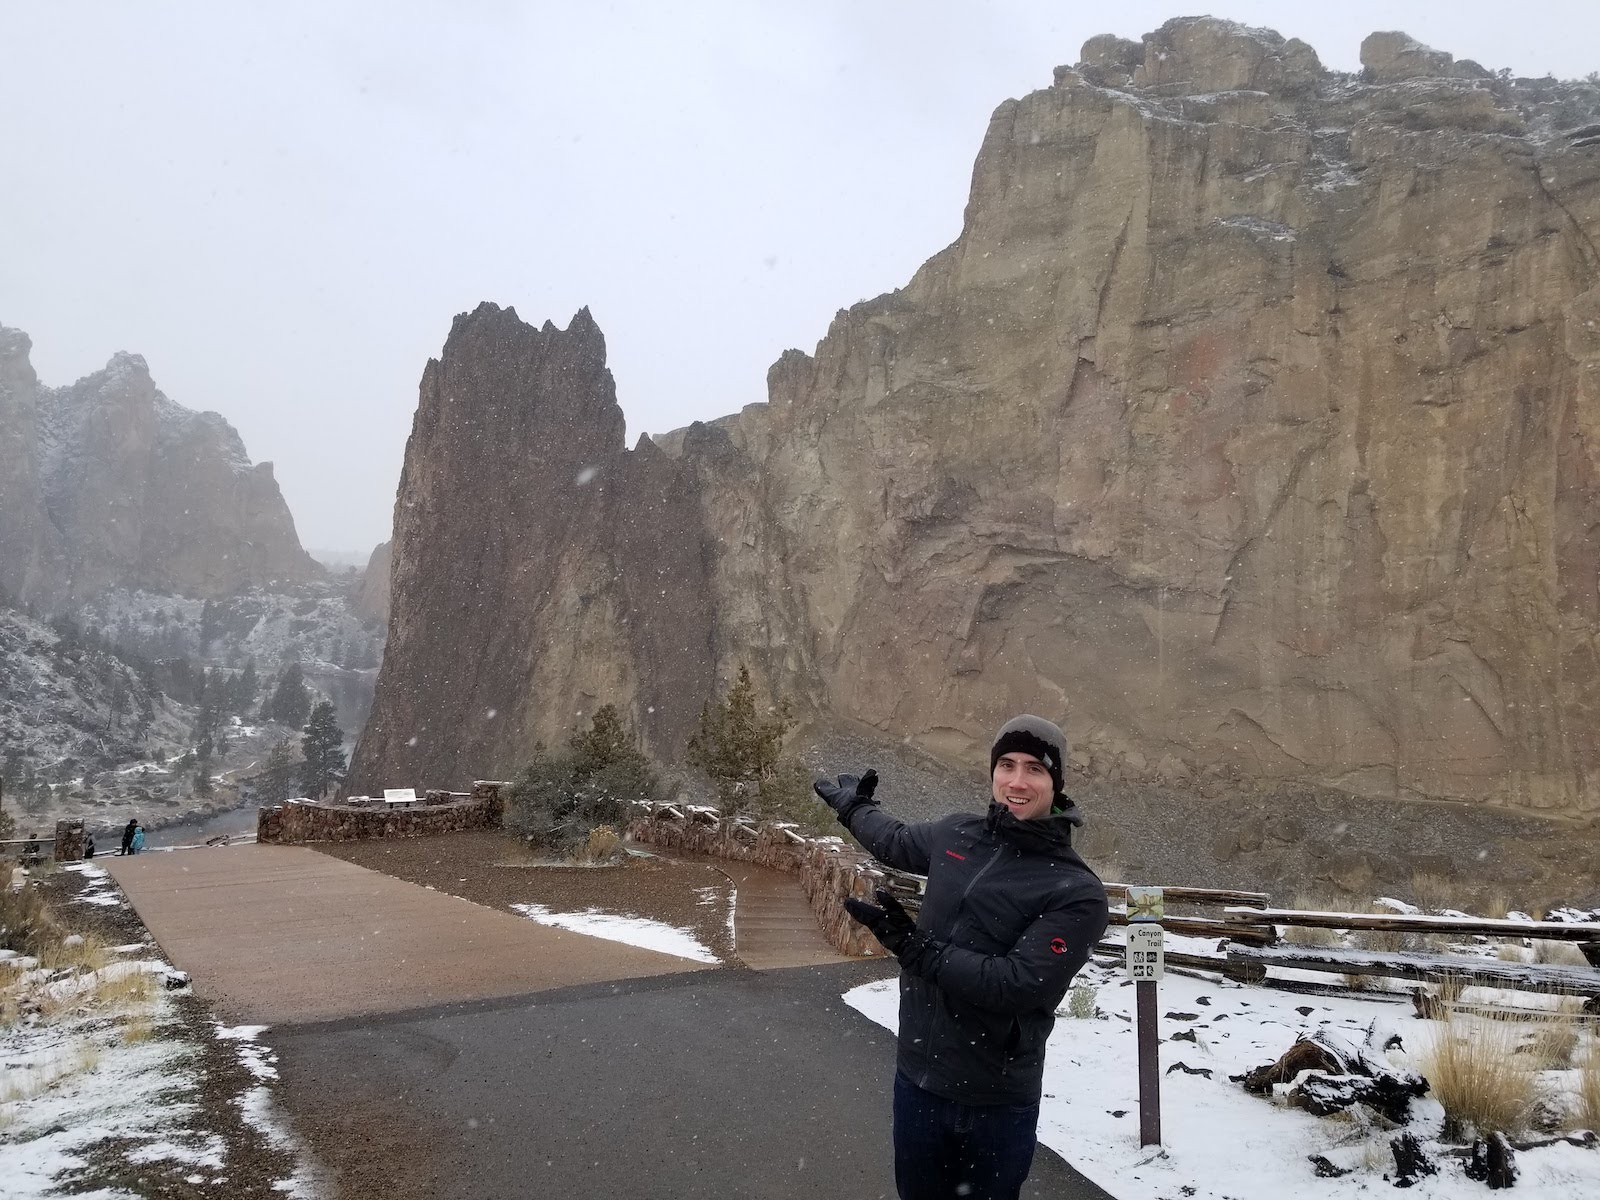 Jake at Smith Rock